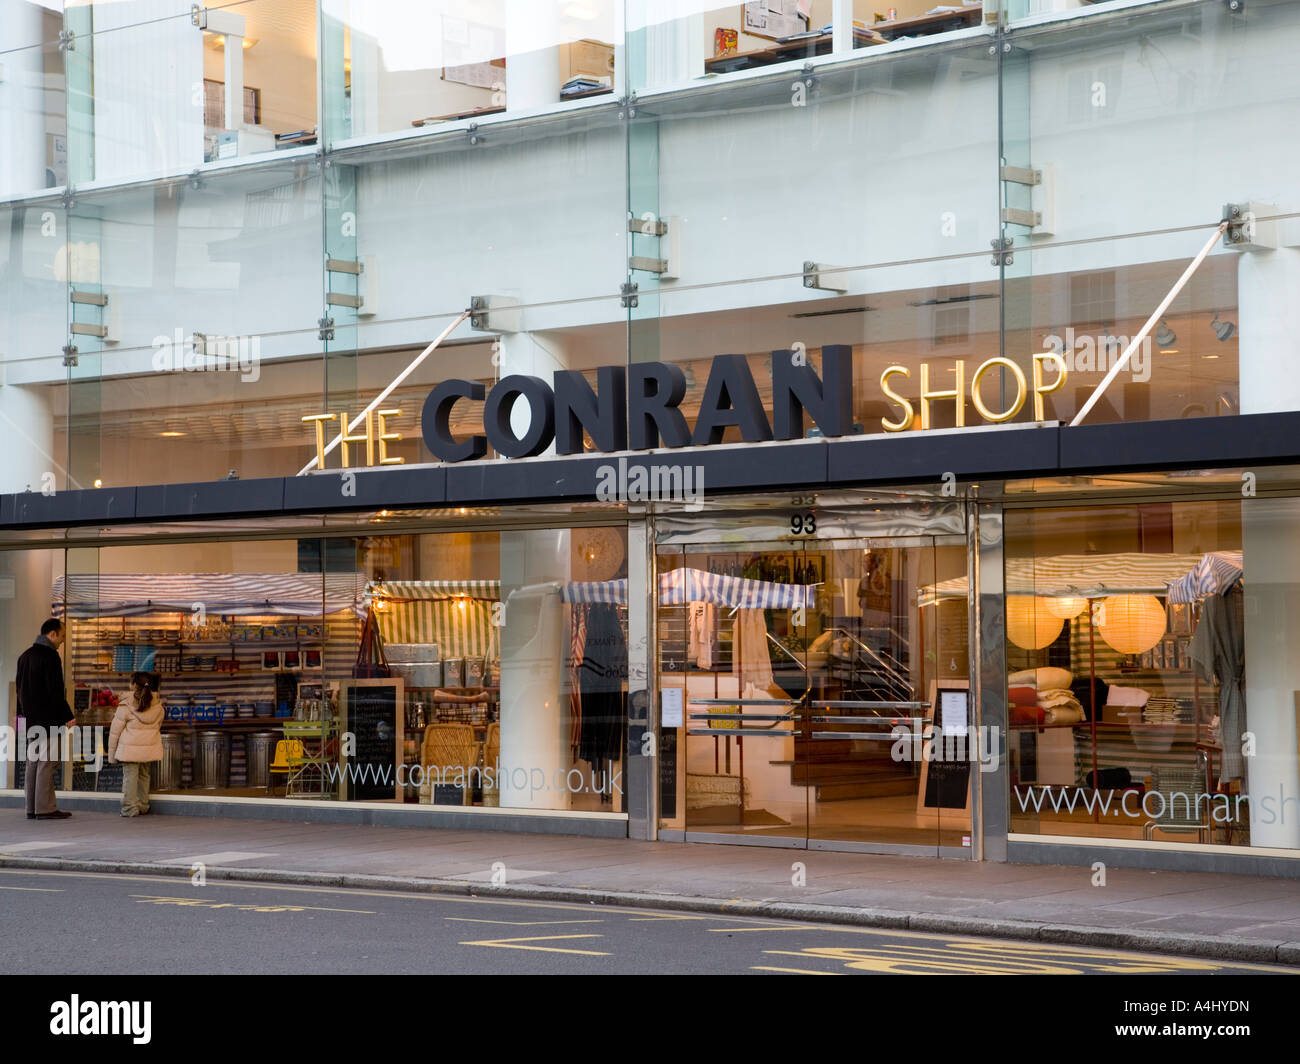 the conran shop entrance stock photo 11057360 alamy. Black Bedroom Furniture Sets. Home Design Ideas